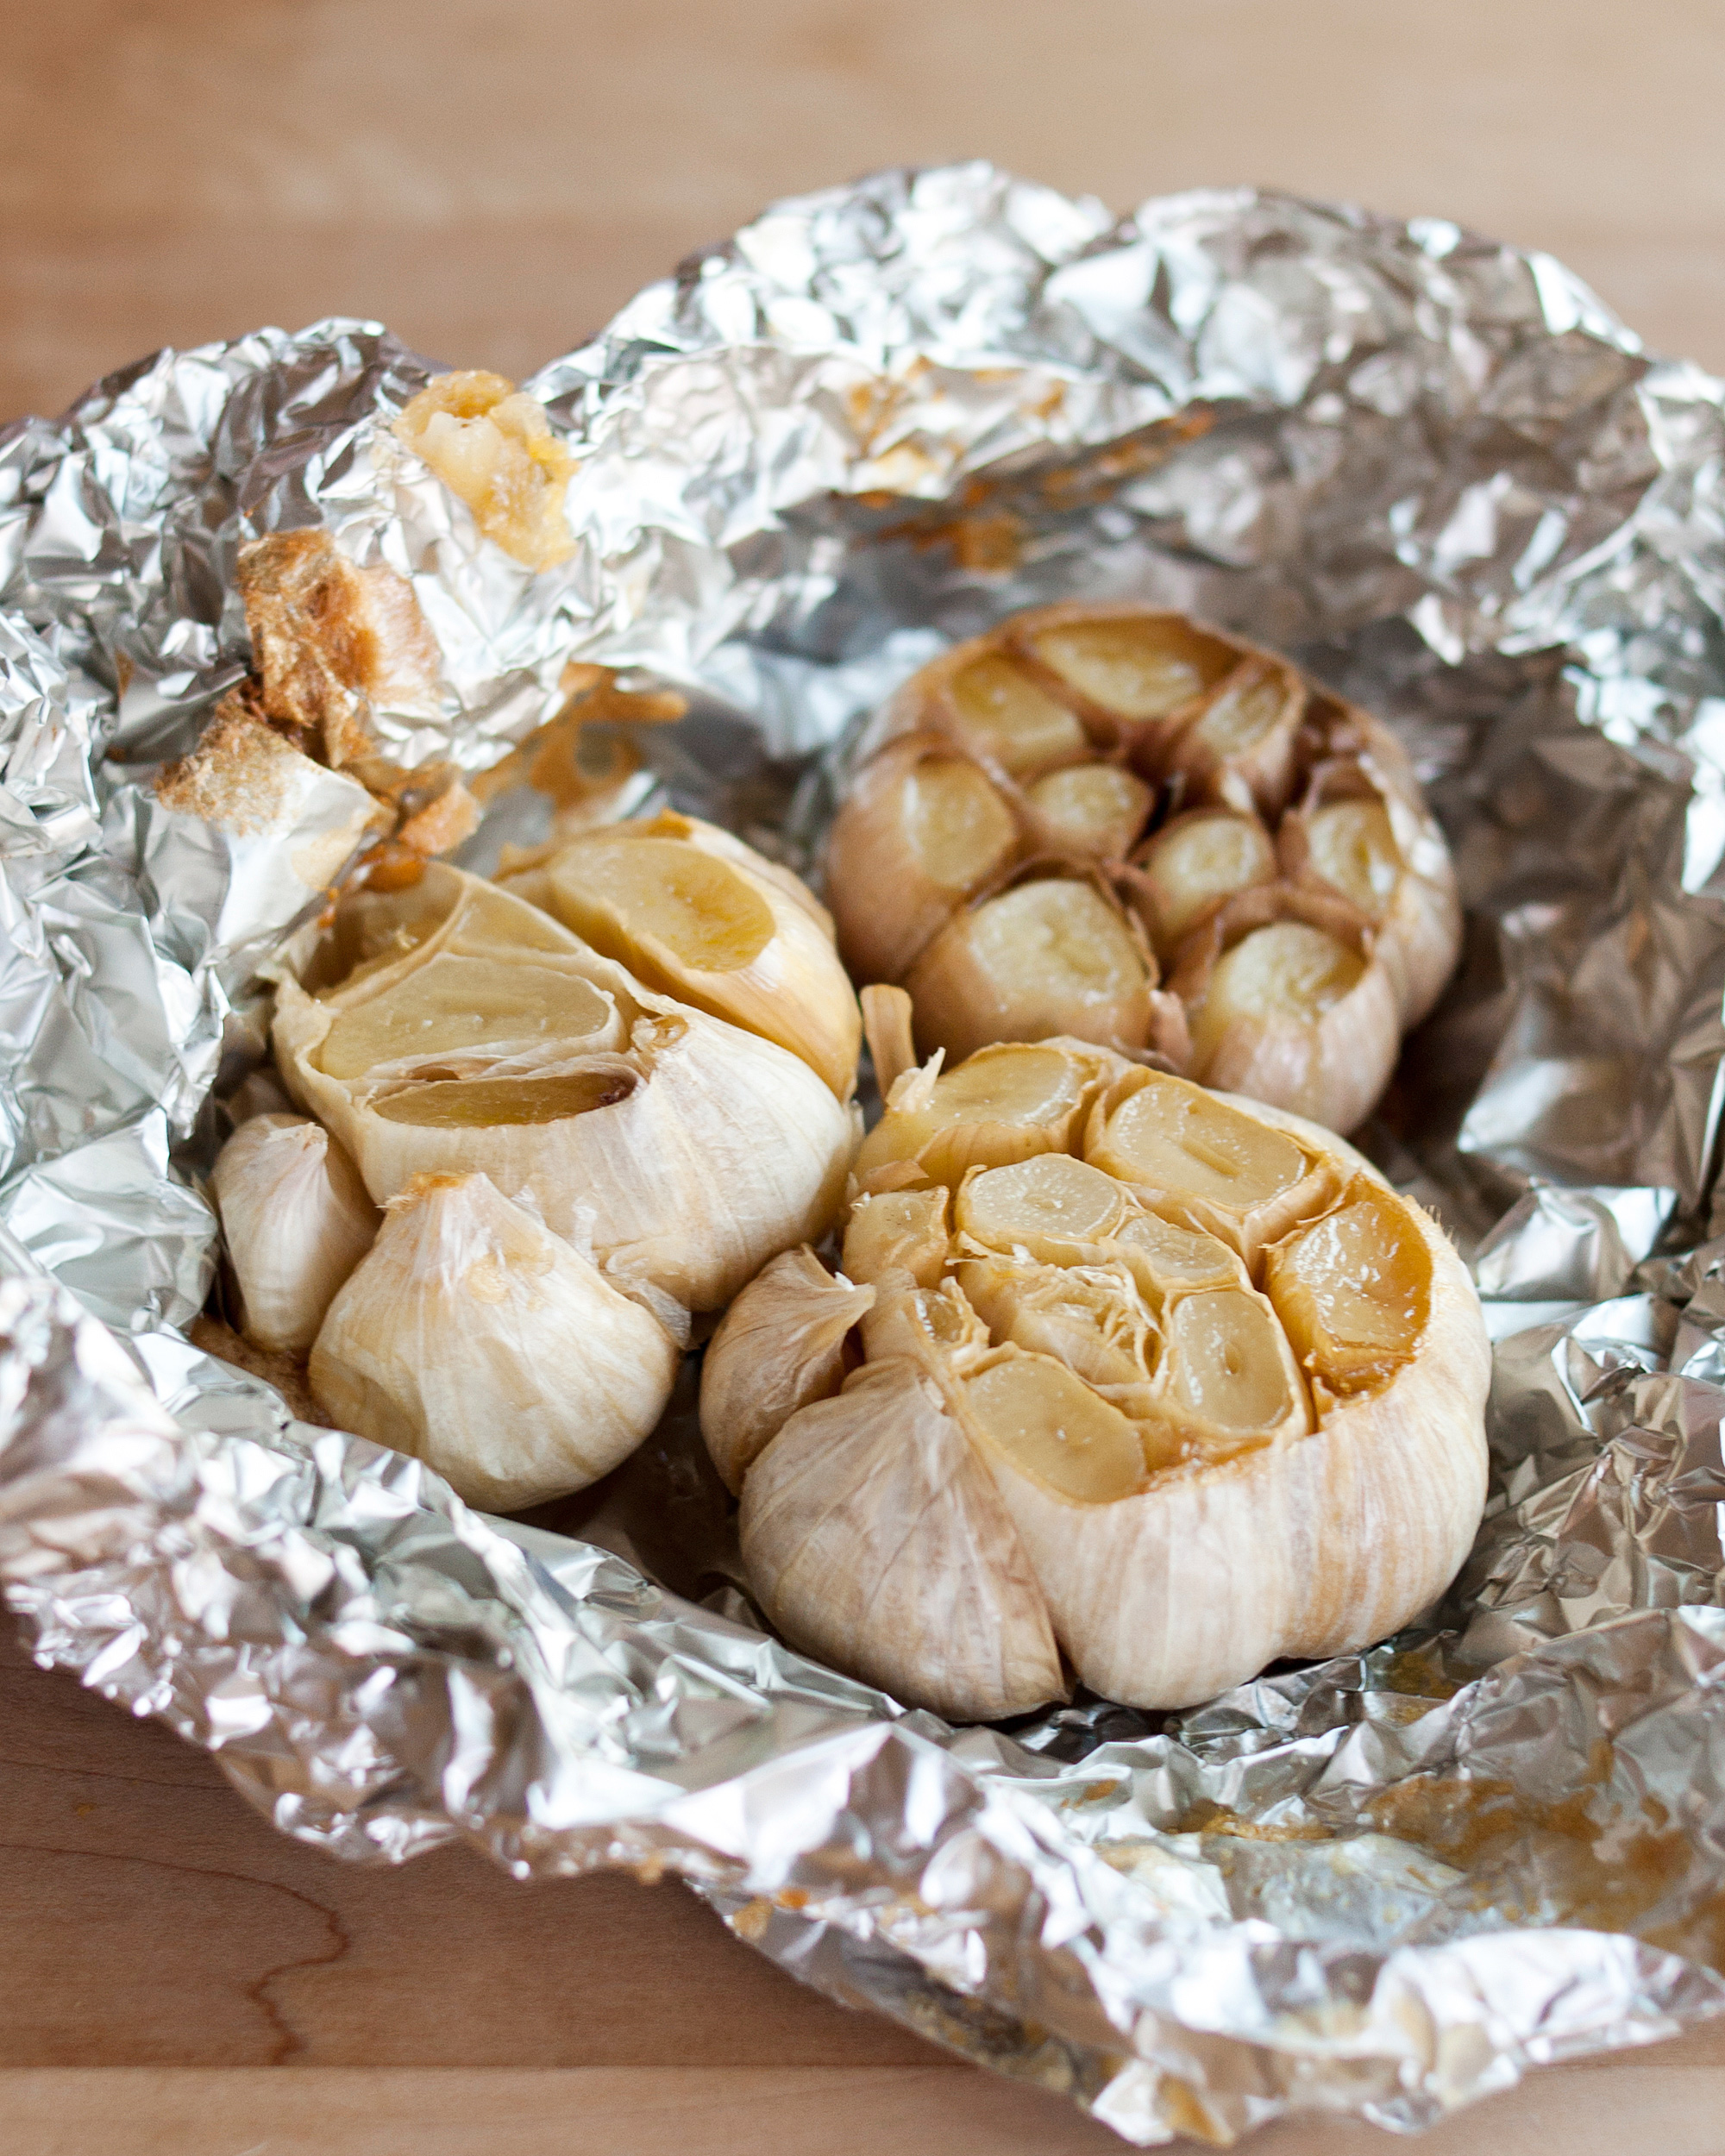 How To Roast Garlic in the Oven | Kitchn